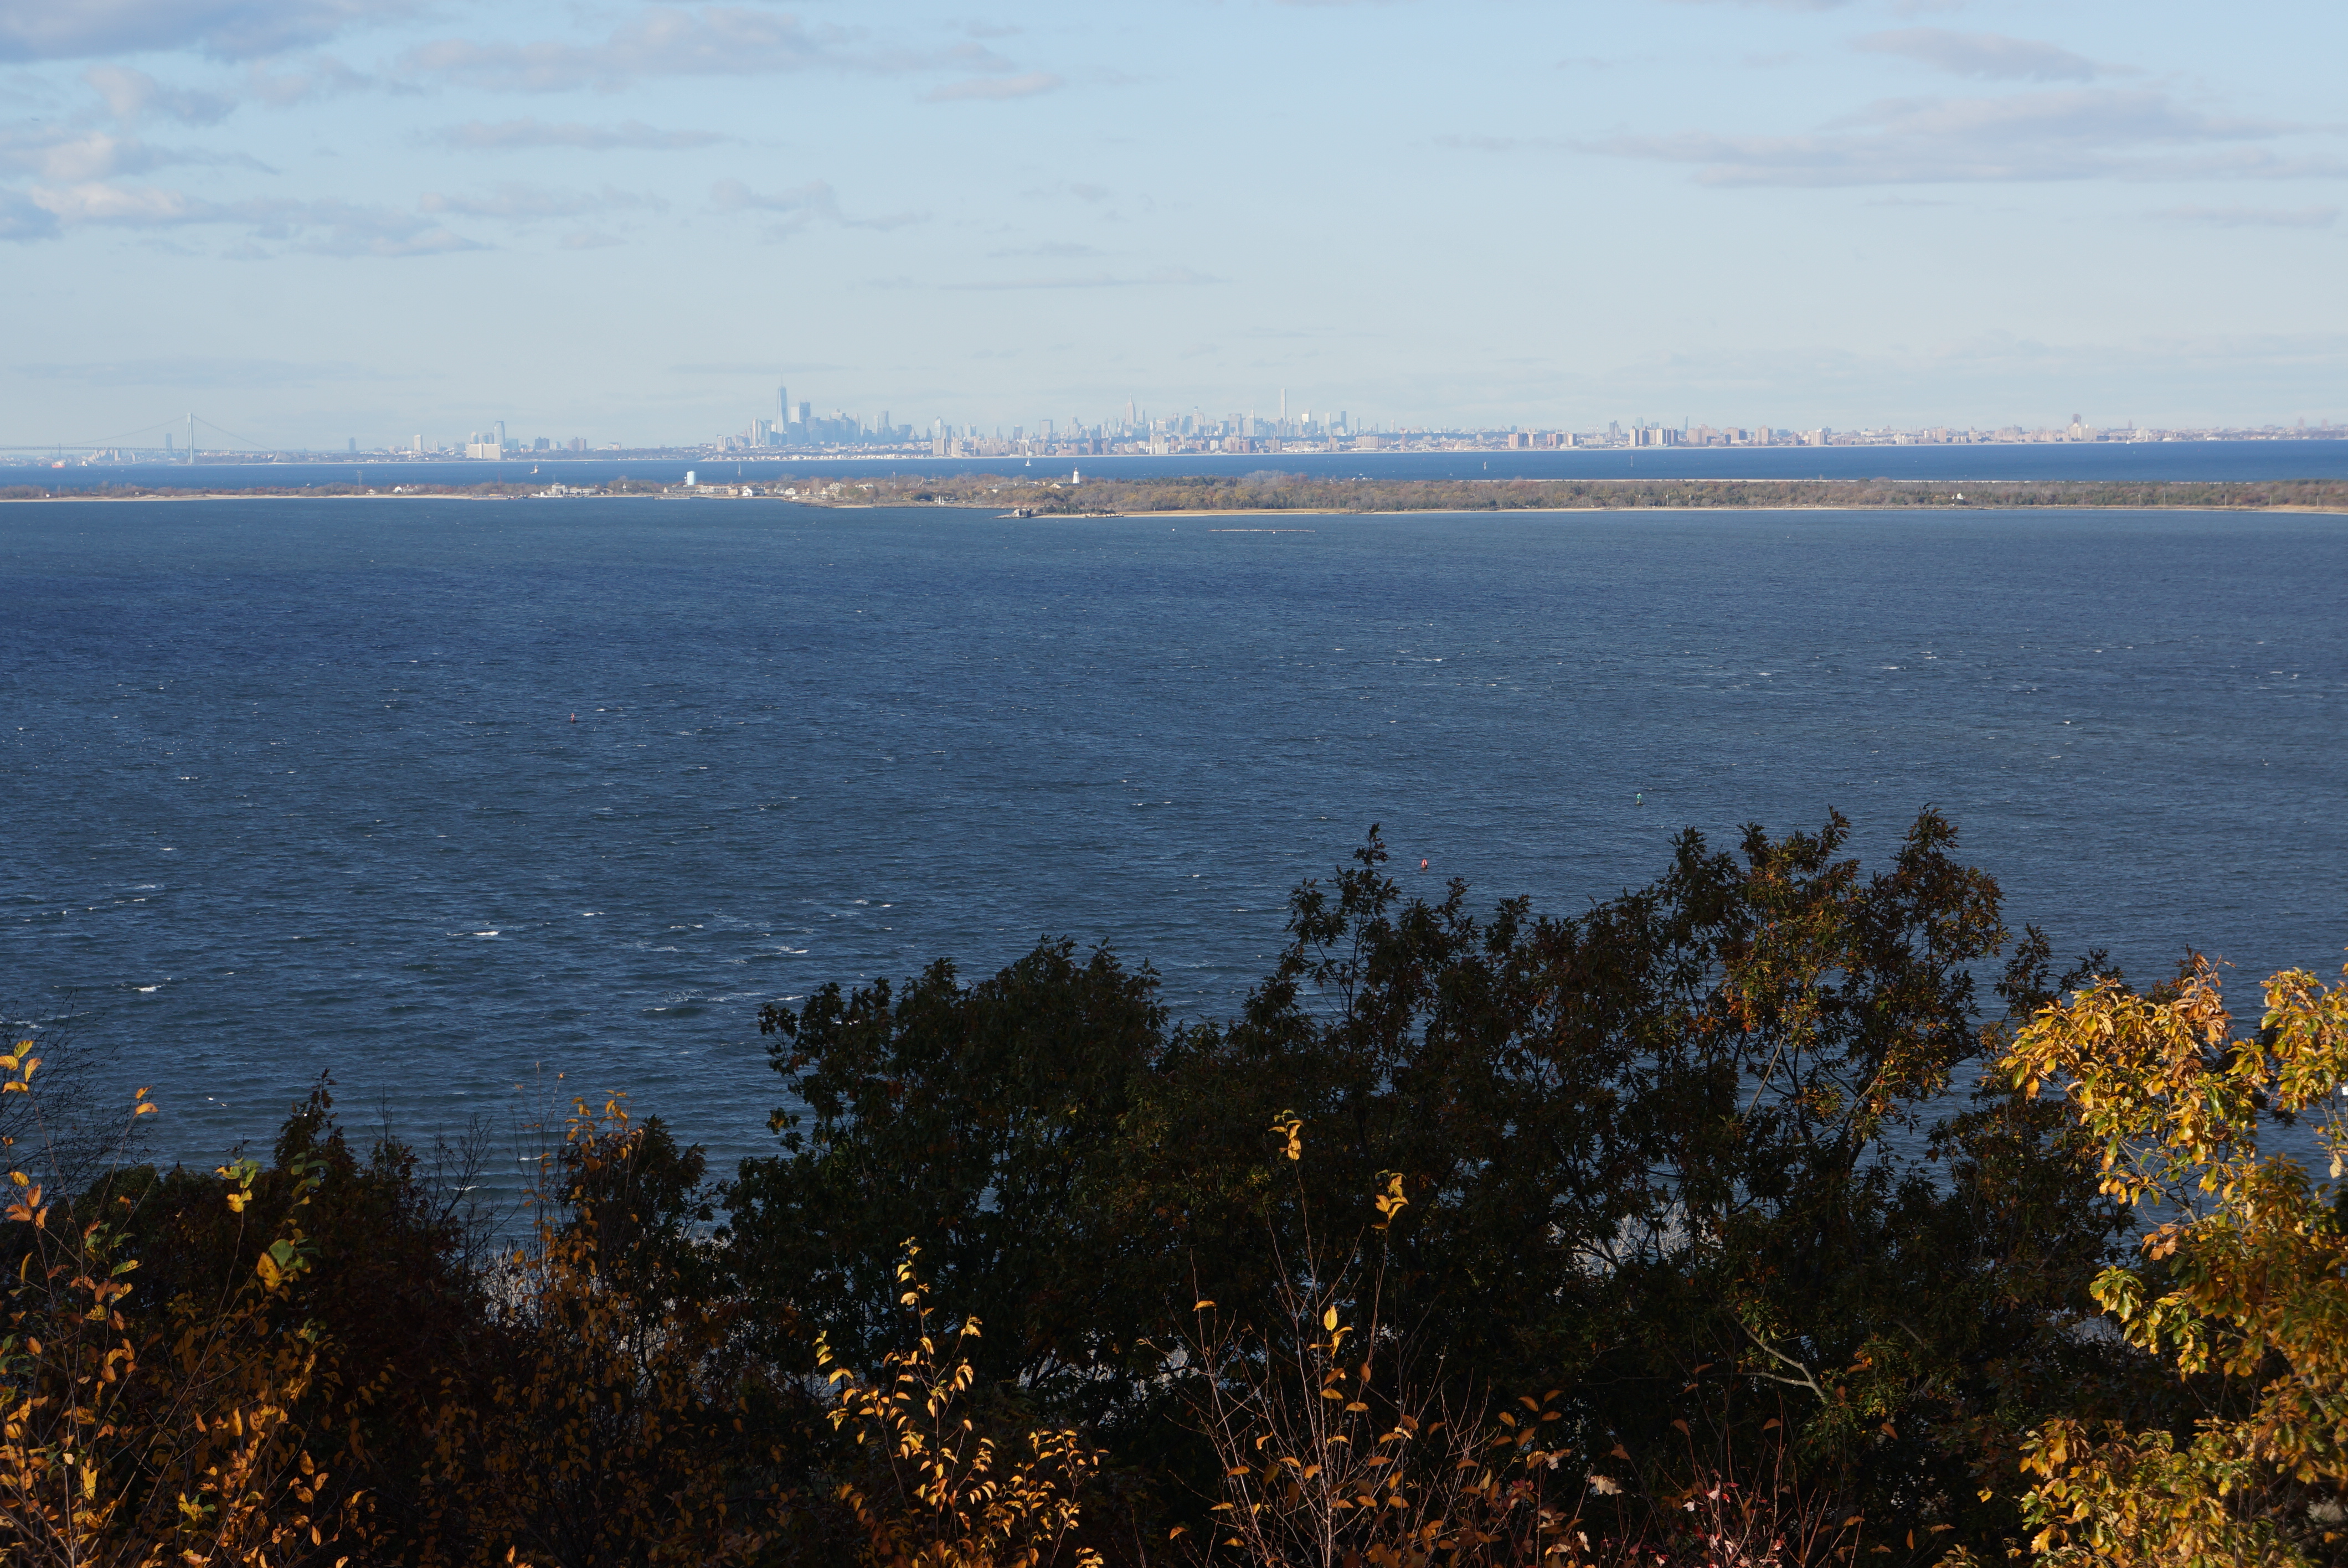 The tremendous view from the Mount Mitchill Overlook